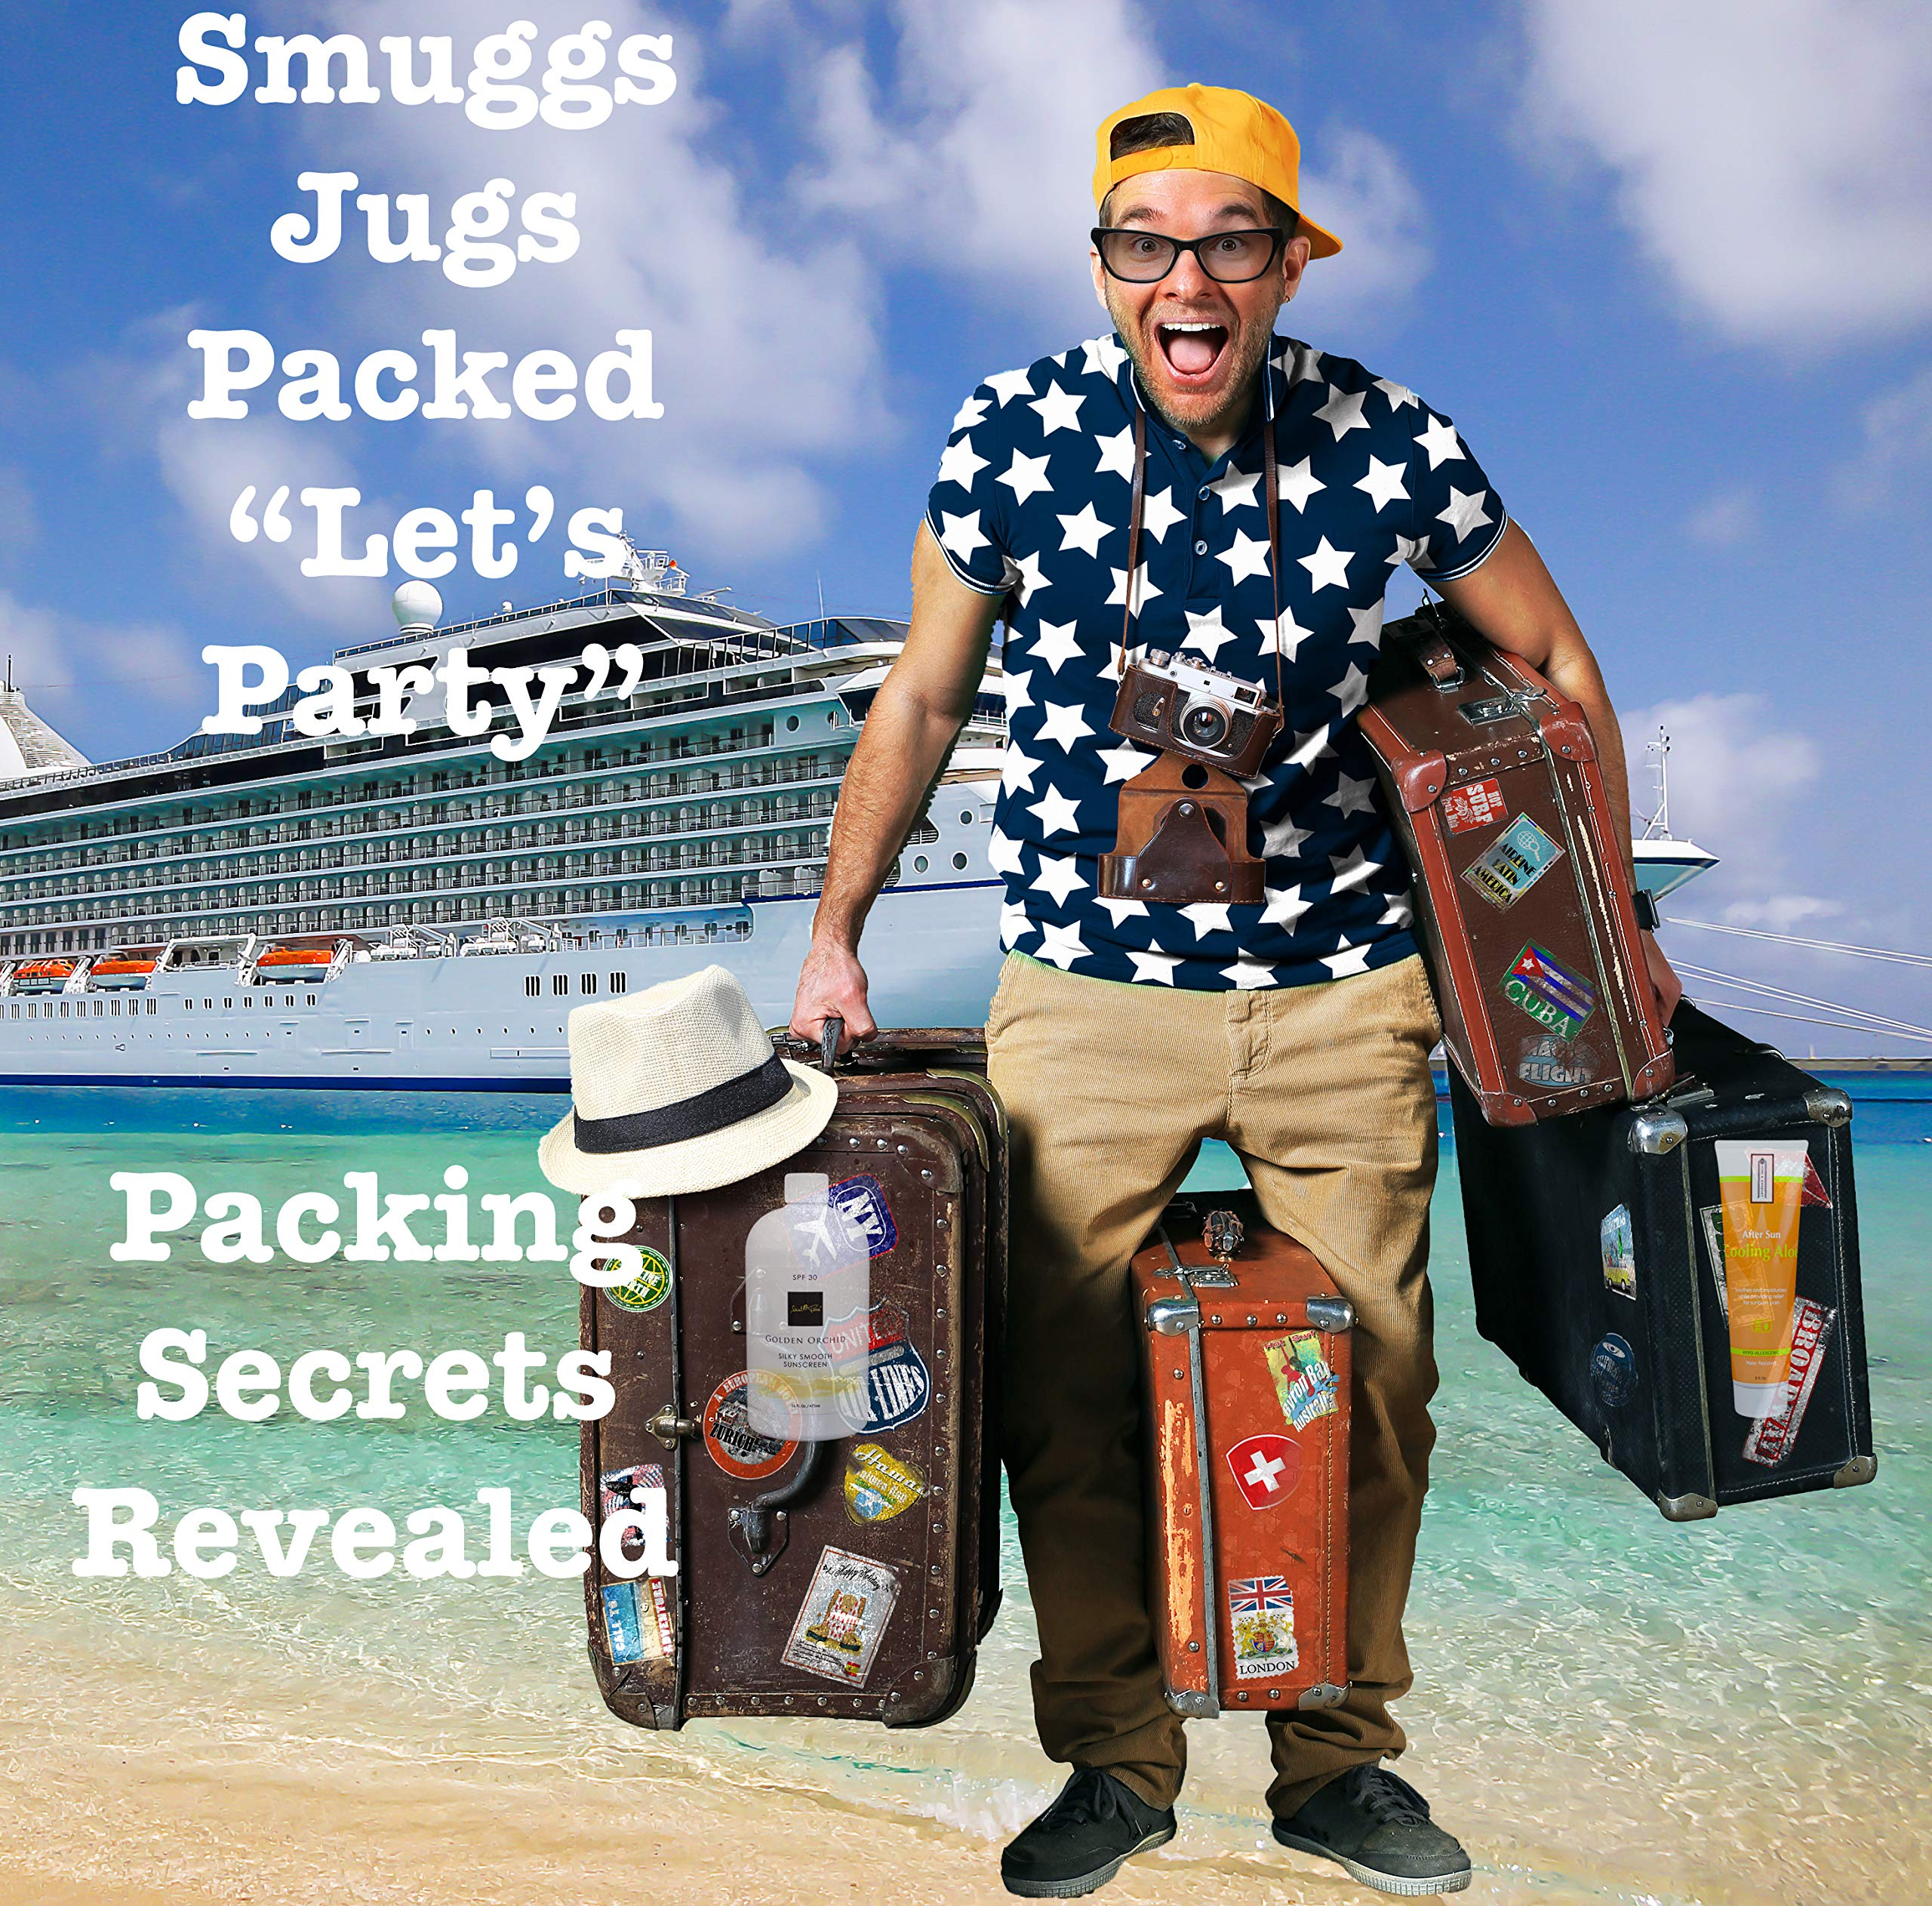 Smuggs Jugs Four Bottle Flask Kit (4-16oz) Smuggle Booze On Cruise Be A Rum Runner by Smuggs Jugs (Image #4)